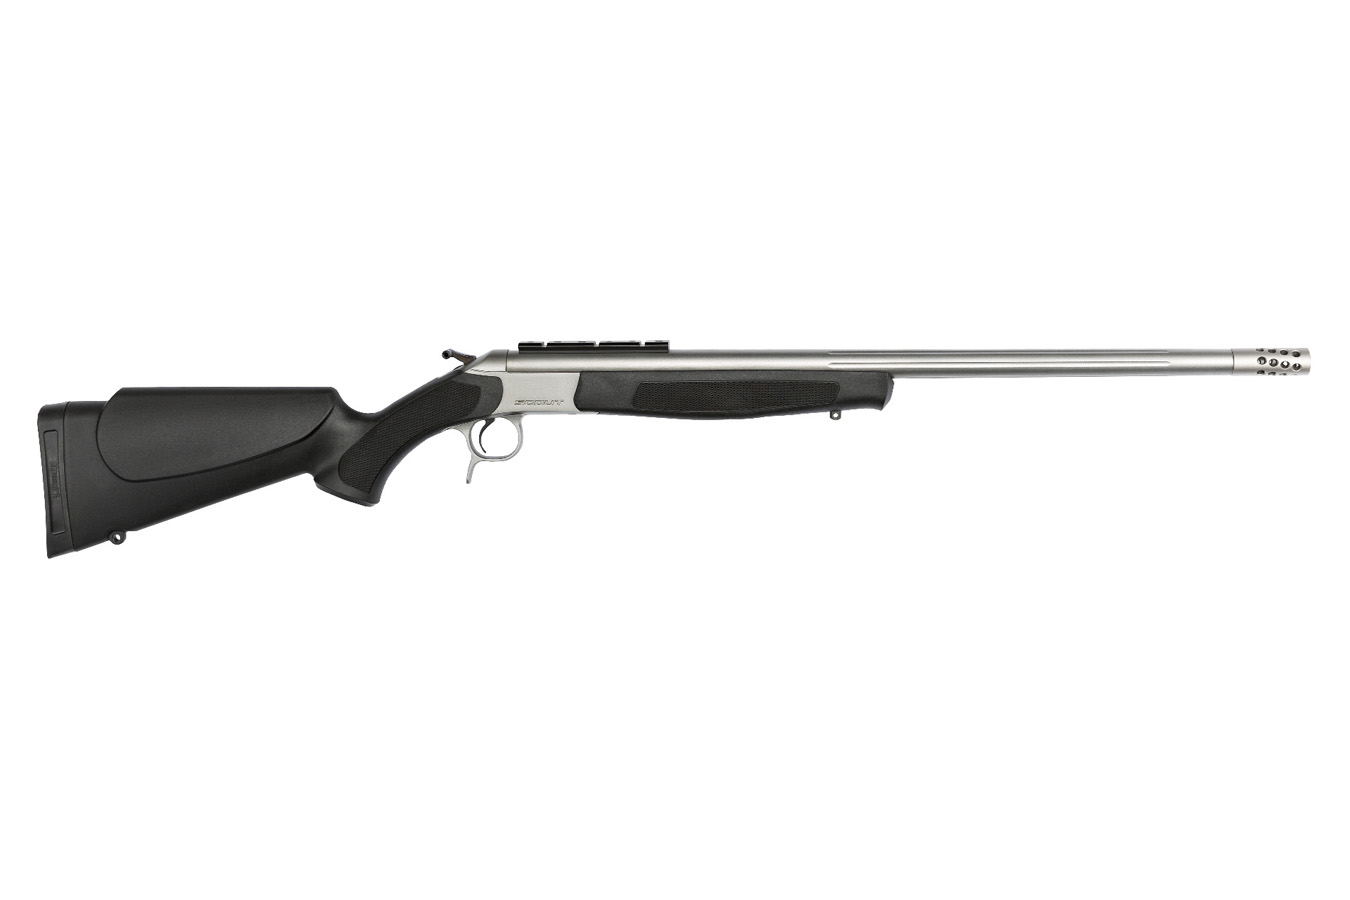 SCOUT V2 444 MARLIN WITH FLUTED BARREL